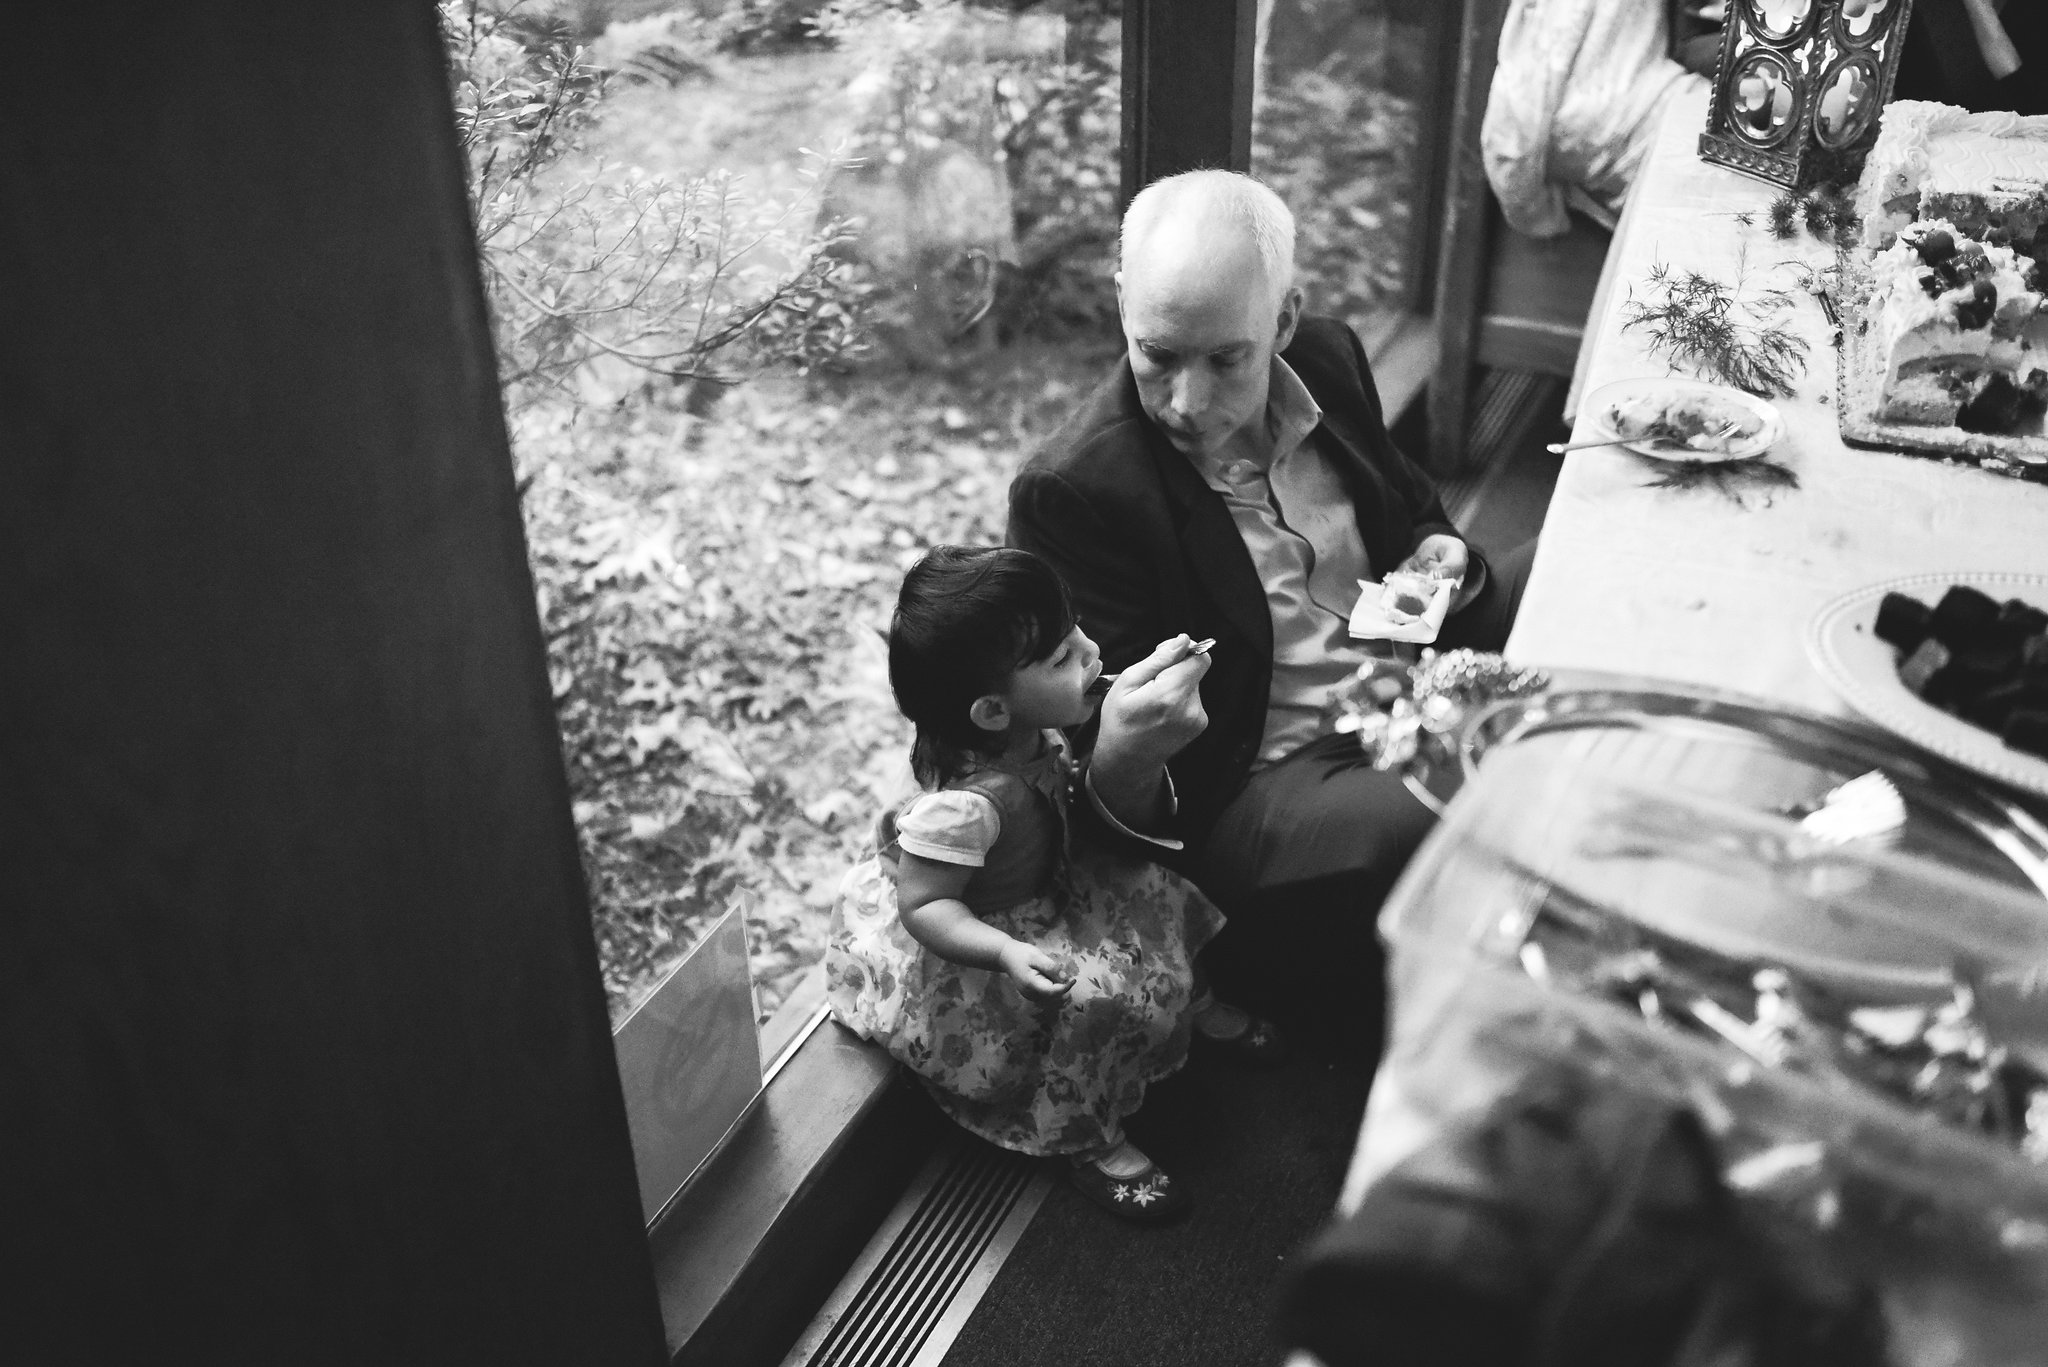 Vintage, DIY, Rustic, Germantown, Baltimore Wedding Photographer, Alternative, Casual, Outdoor Wedding, Church Wedding, Whimsical, Campground, Candid Photo, Family Photo, Wedding Reception